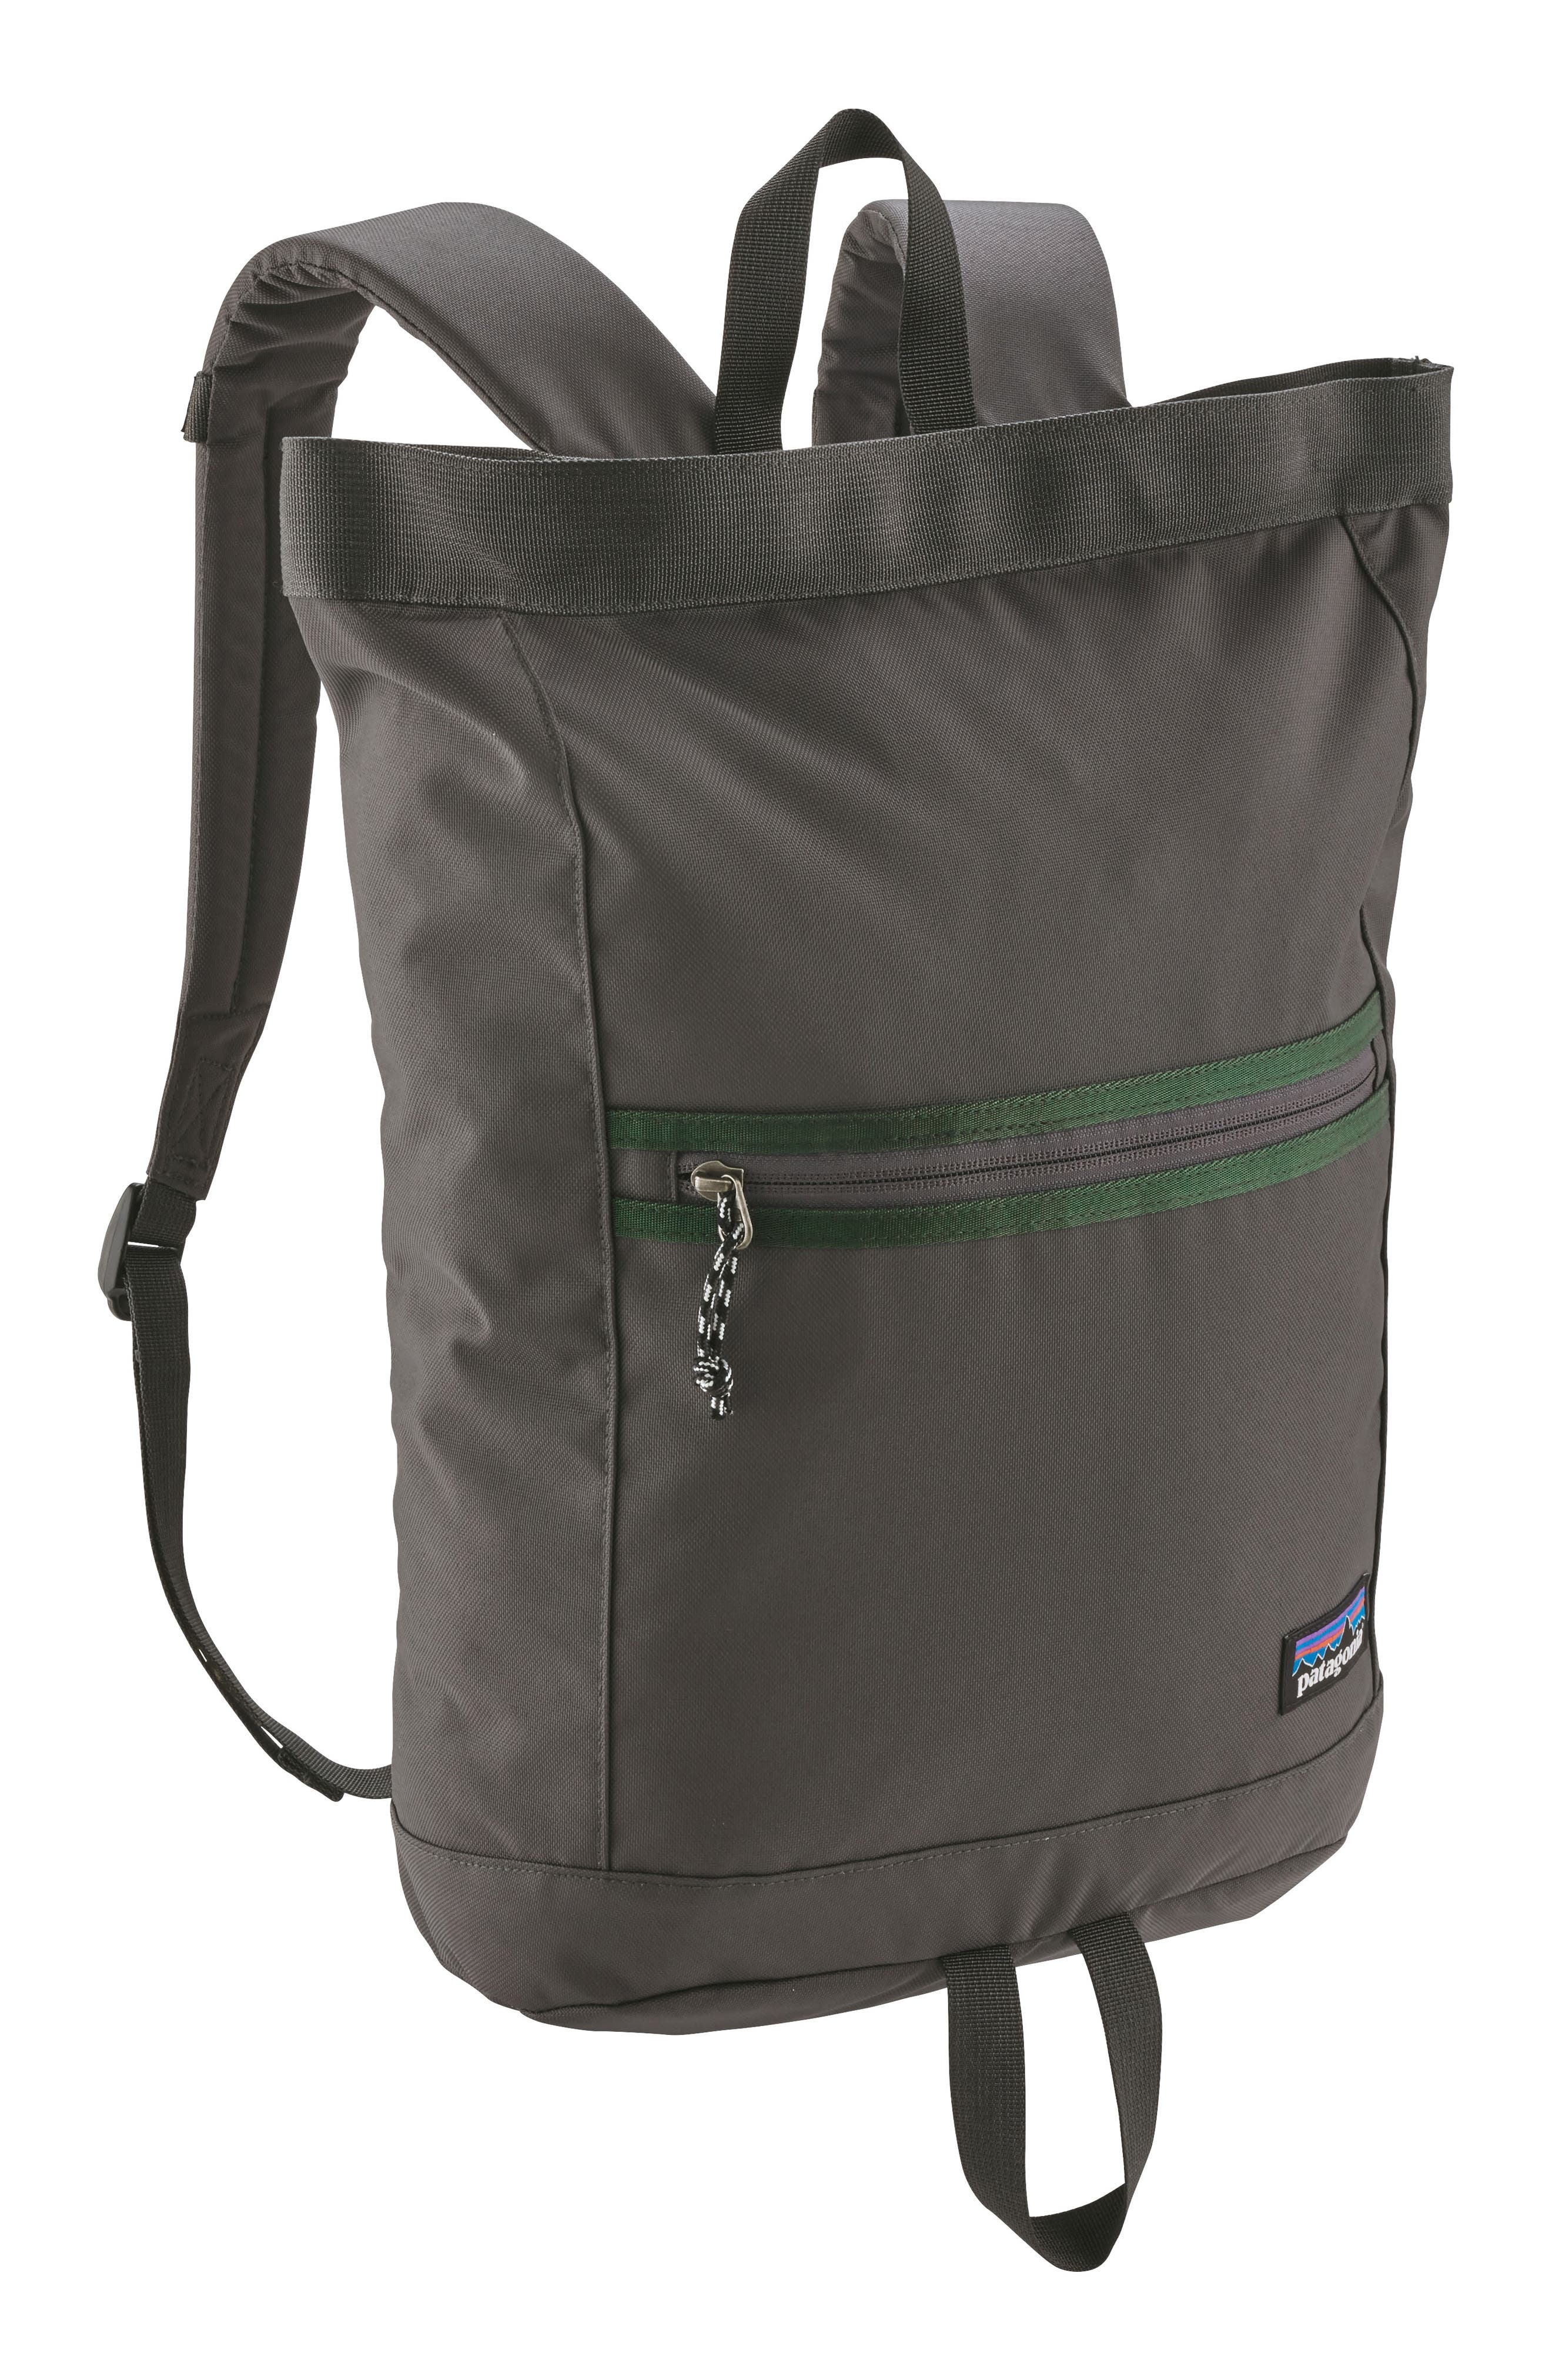 Arbor Market Backpack,                             Main thumbnail 1, color,                             FGE FORGE GREY